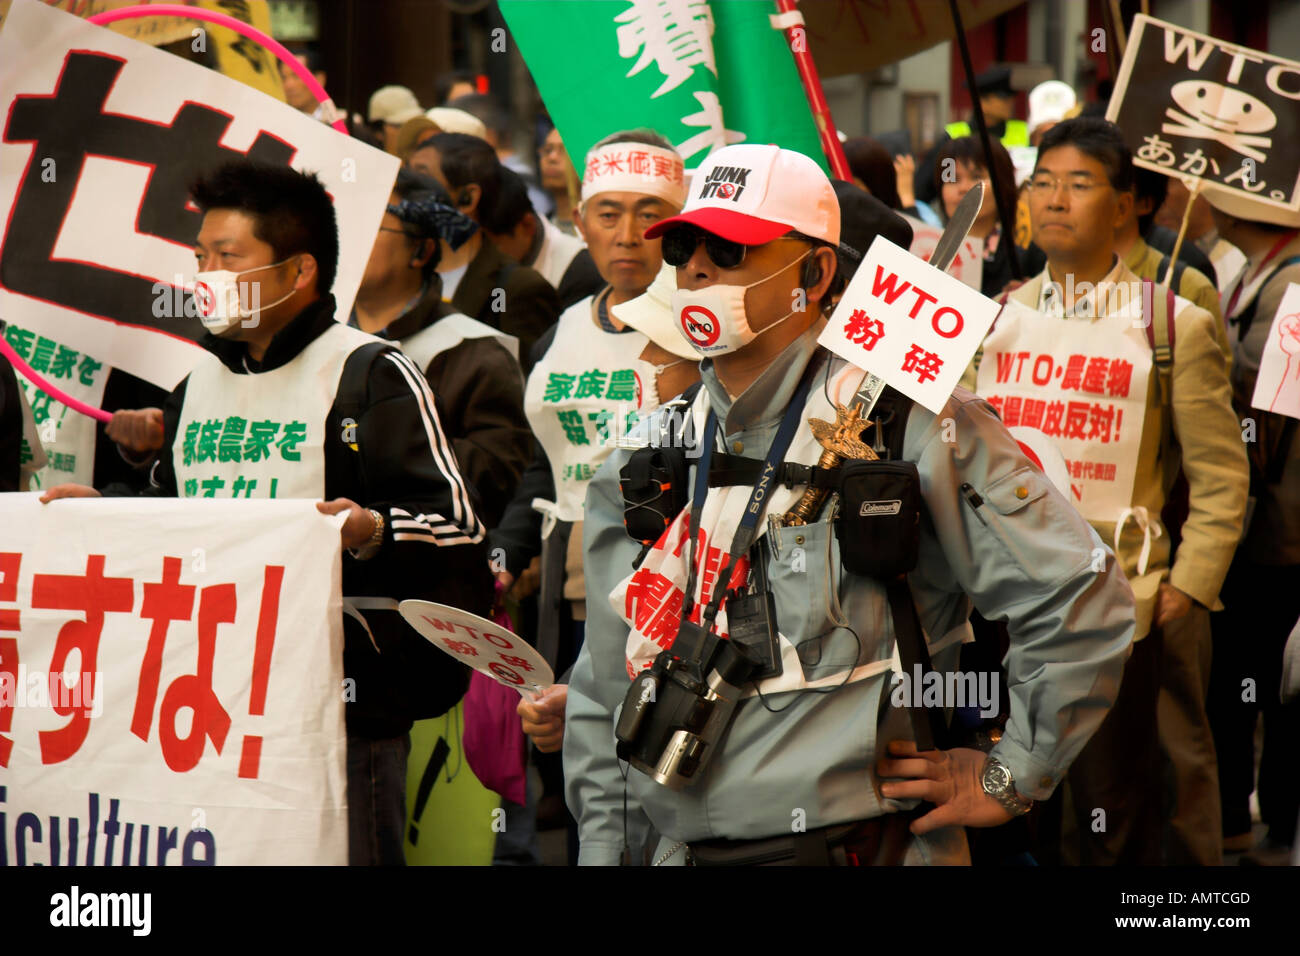 Hong Kong - China WTO protest in December 2005 during the WTO Summit. - Stock Image